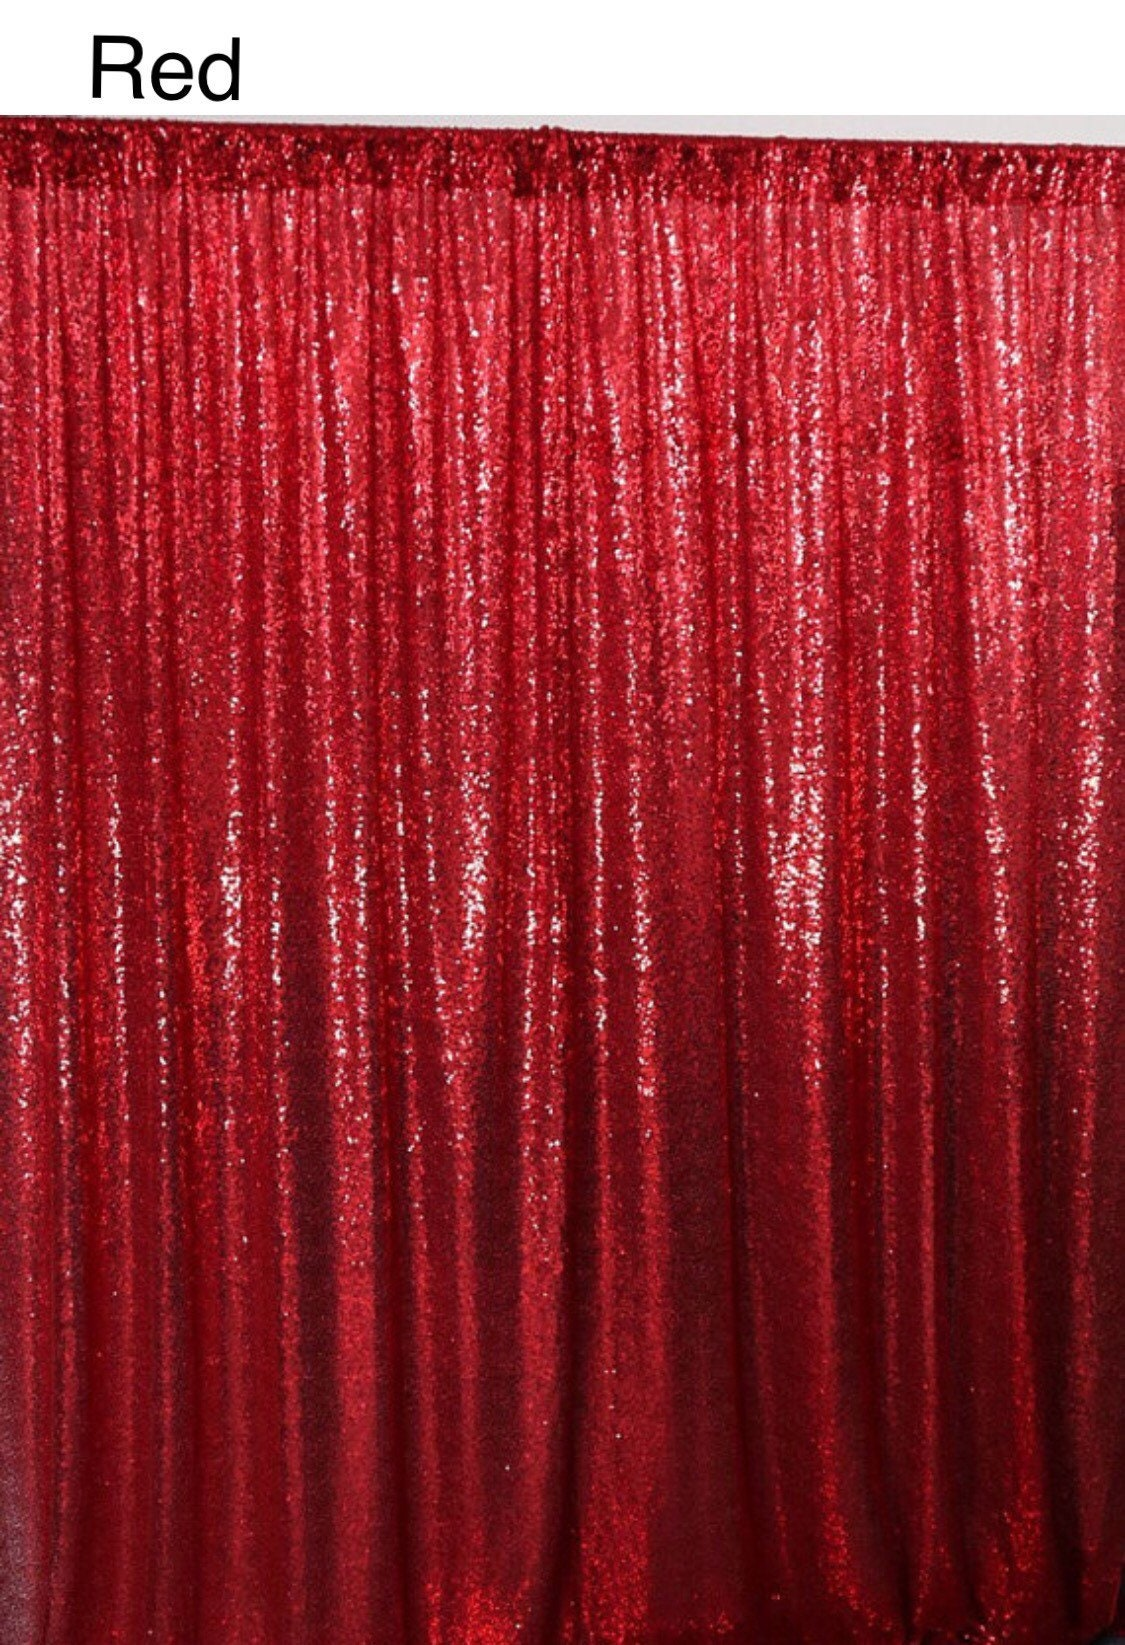 photo backdrop red sequin photo backdrop christmas decor sequin photo backdrop photo booth backdrop sequence backdrop red sequence